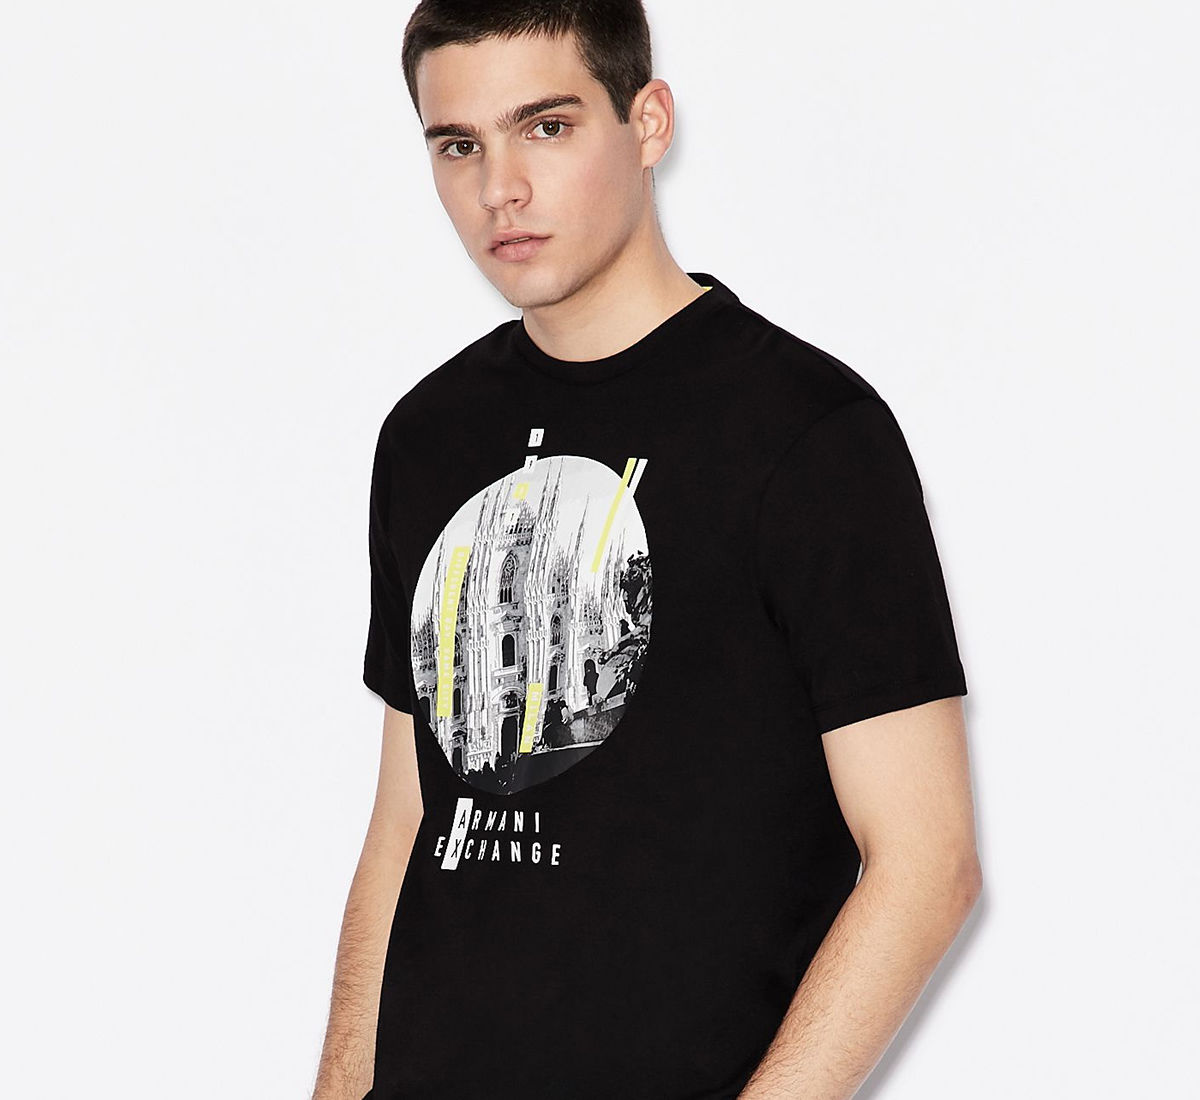 Armani Exchange model wearing a graphic tee